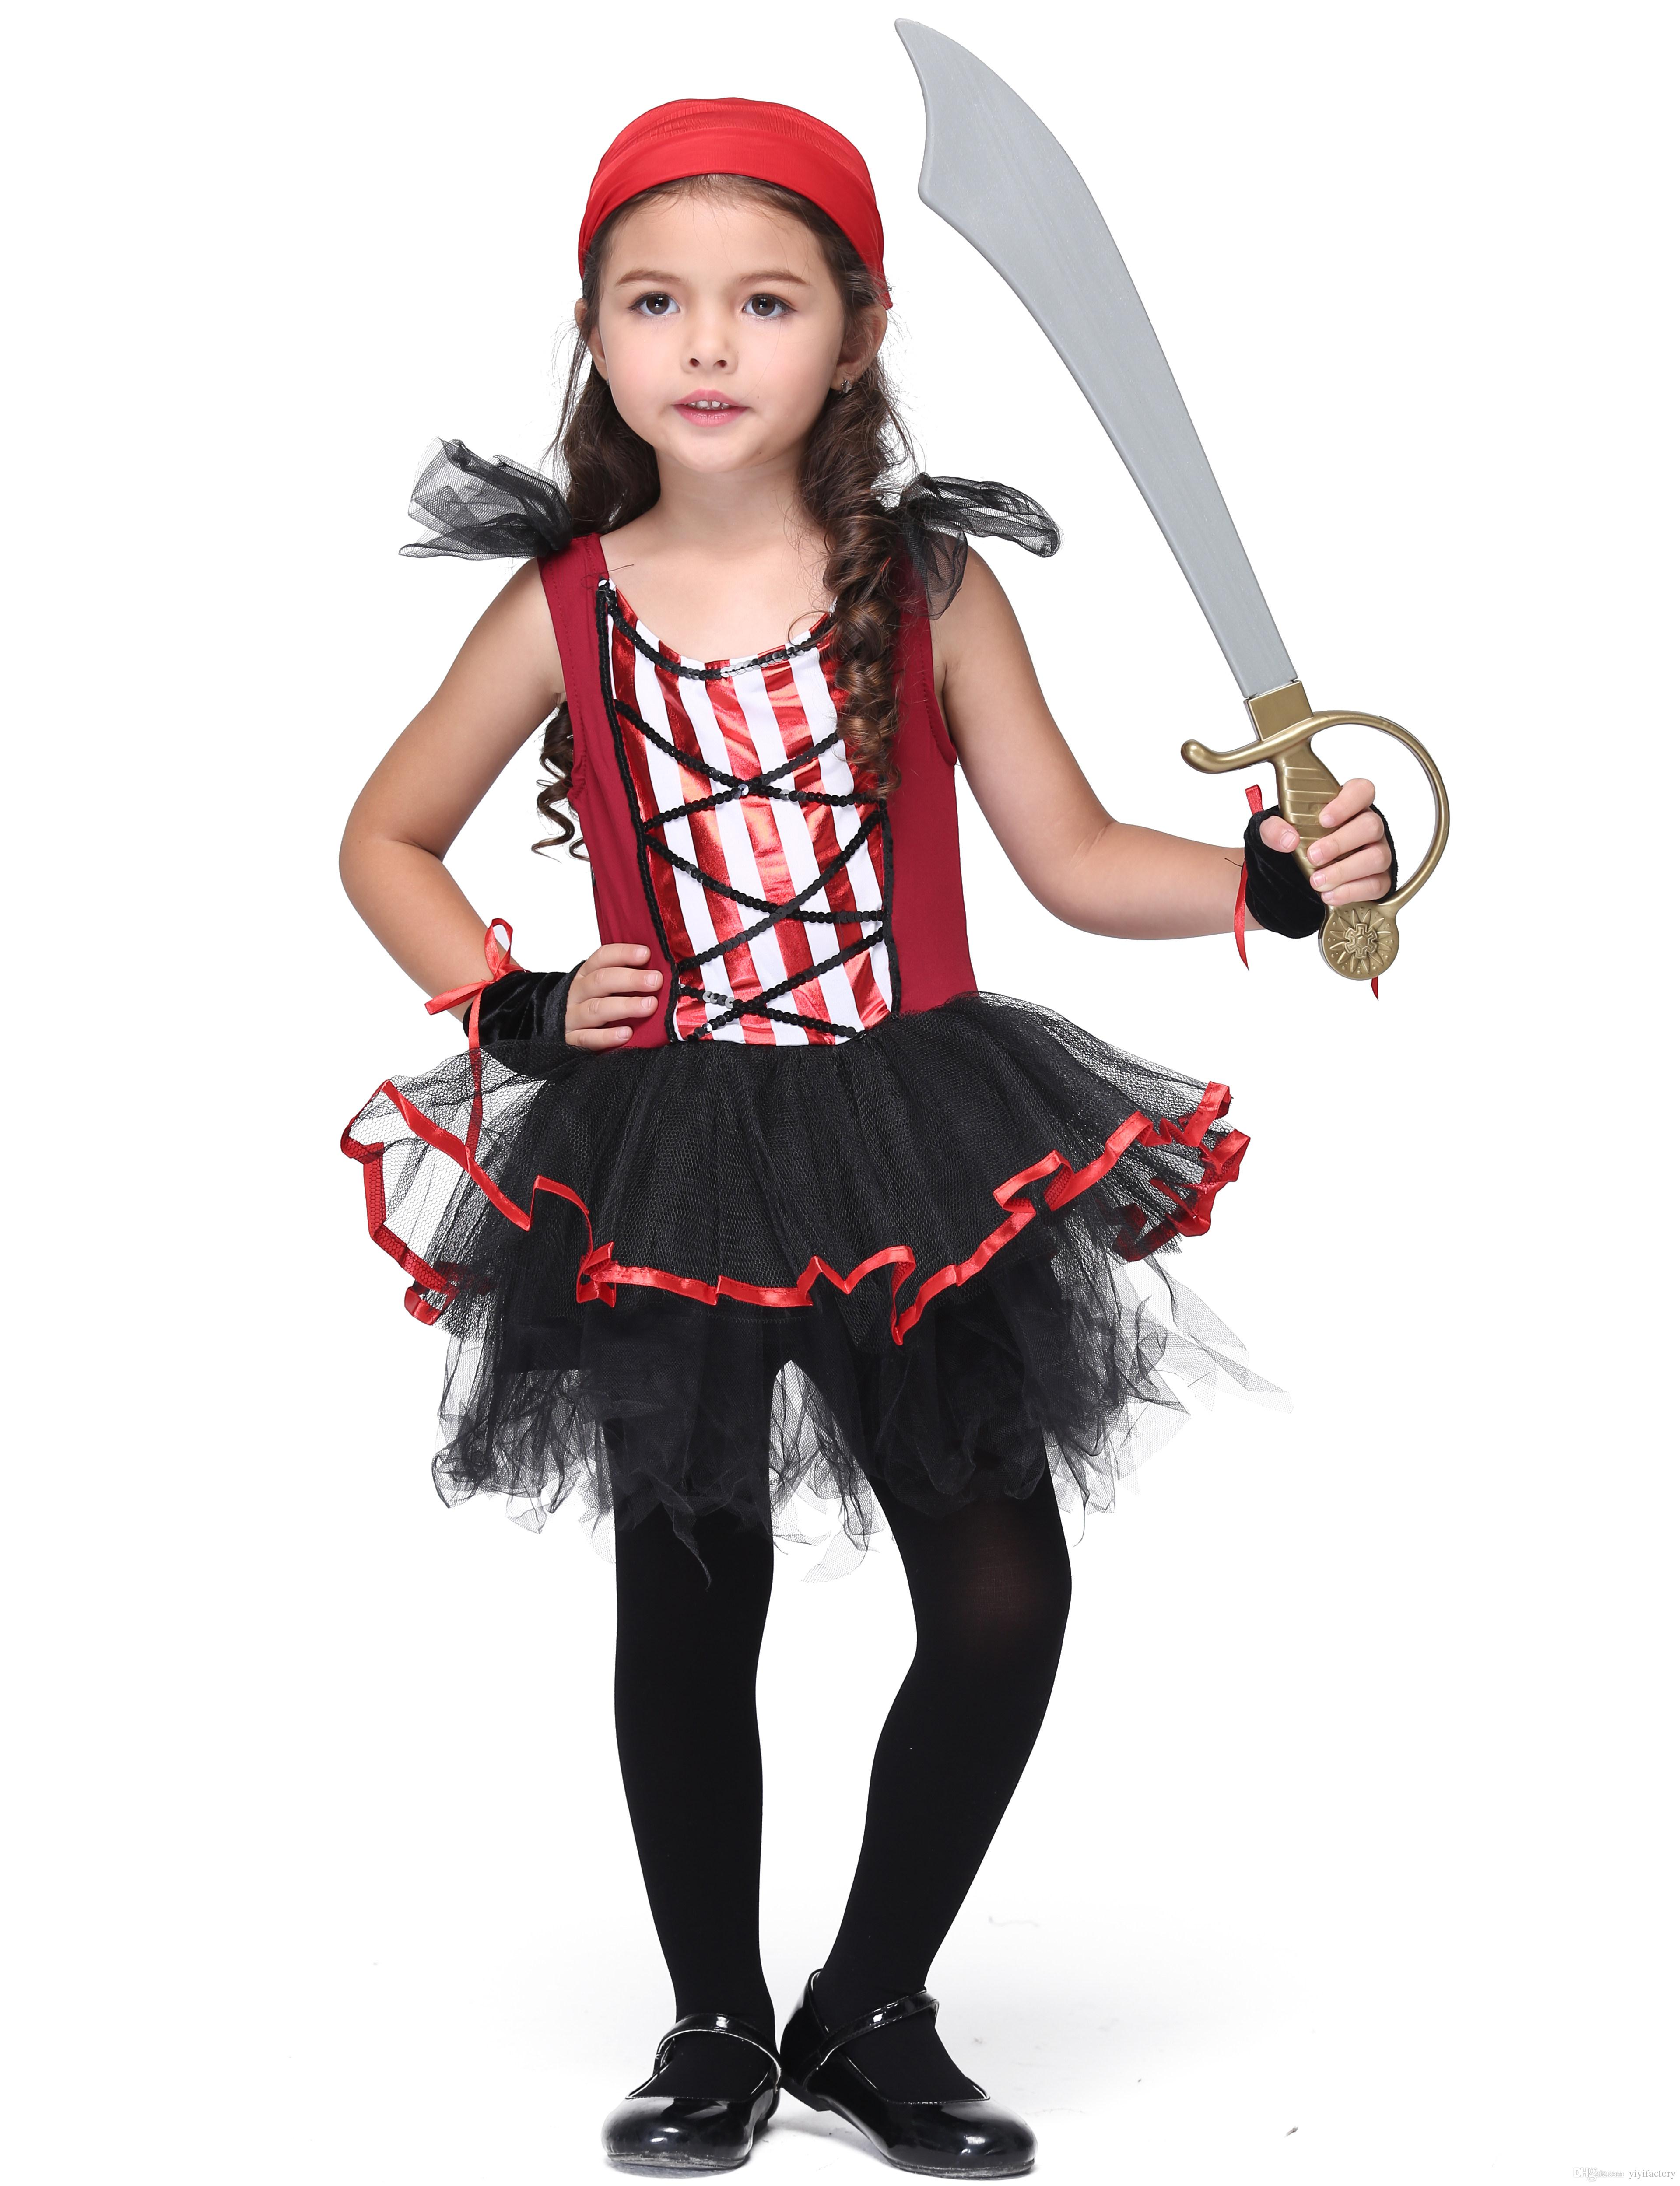 online cheap halloween kids pirate costumes girls pirate cosplay clothes children masquerade party sleeveless tutu dresses red scarf gloves kids set by - Clothes Halloween